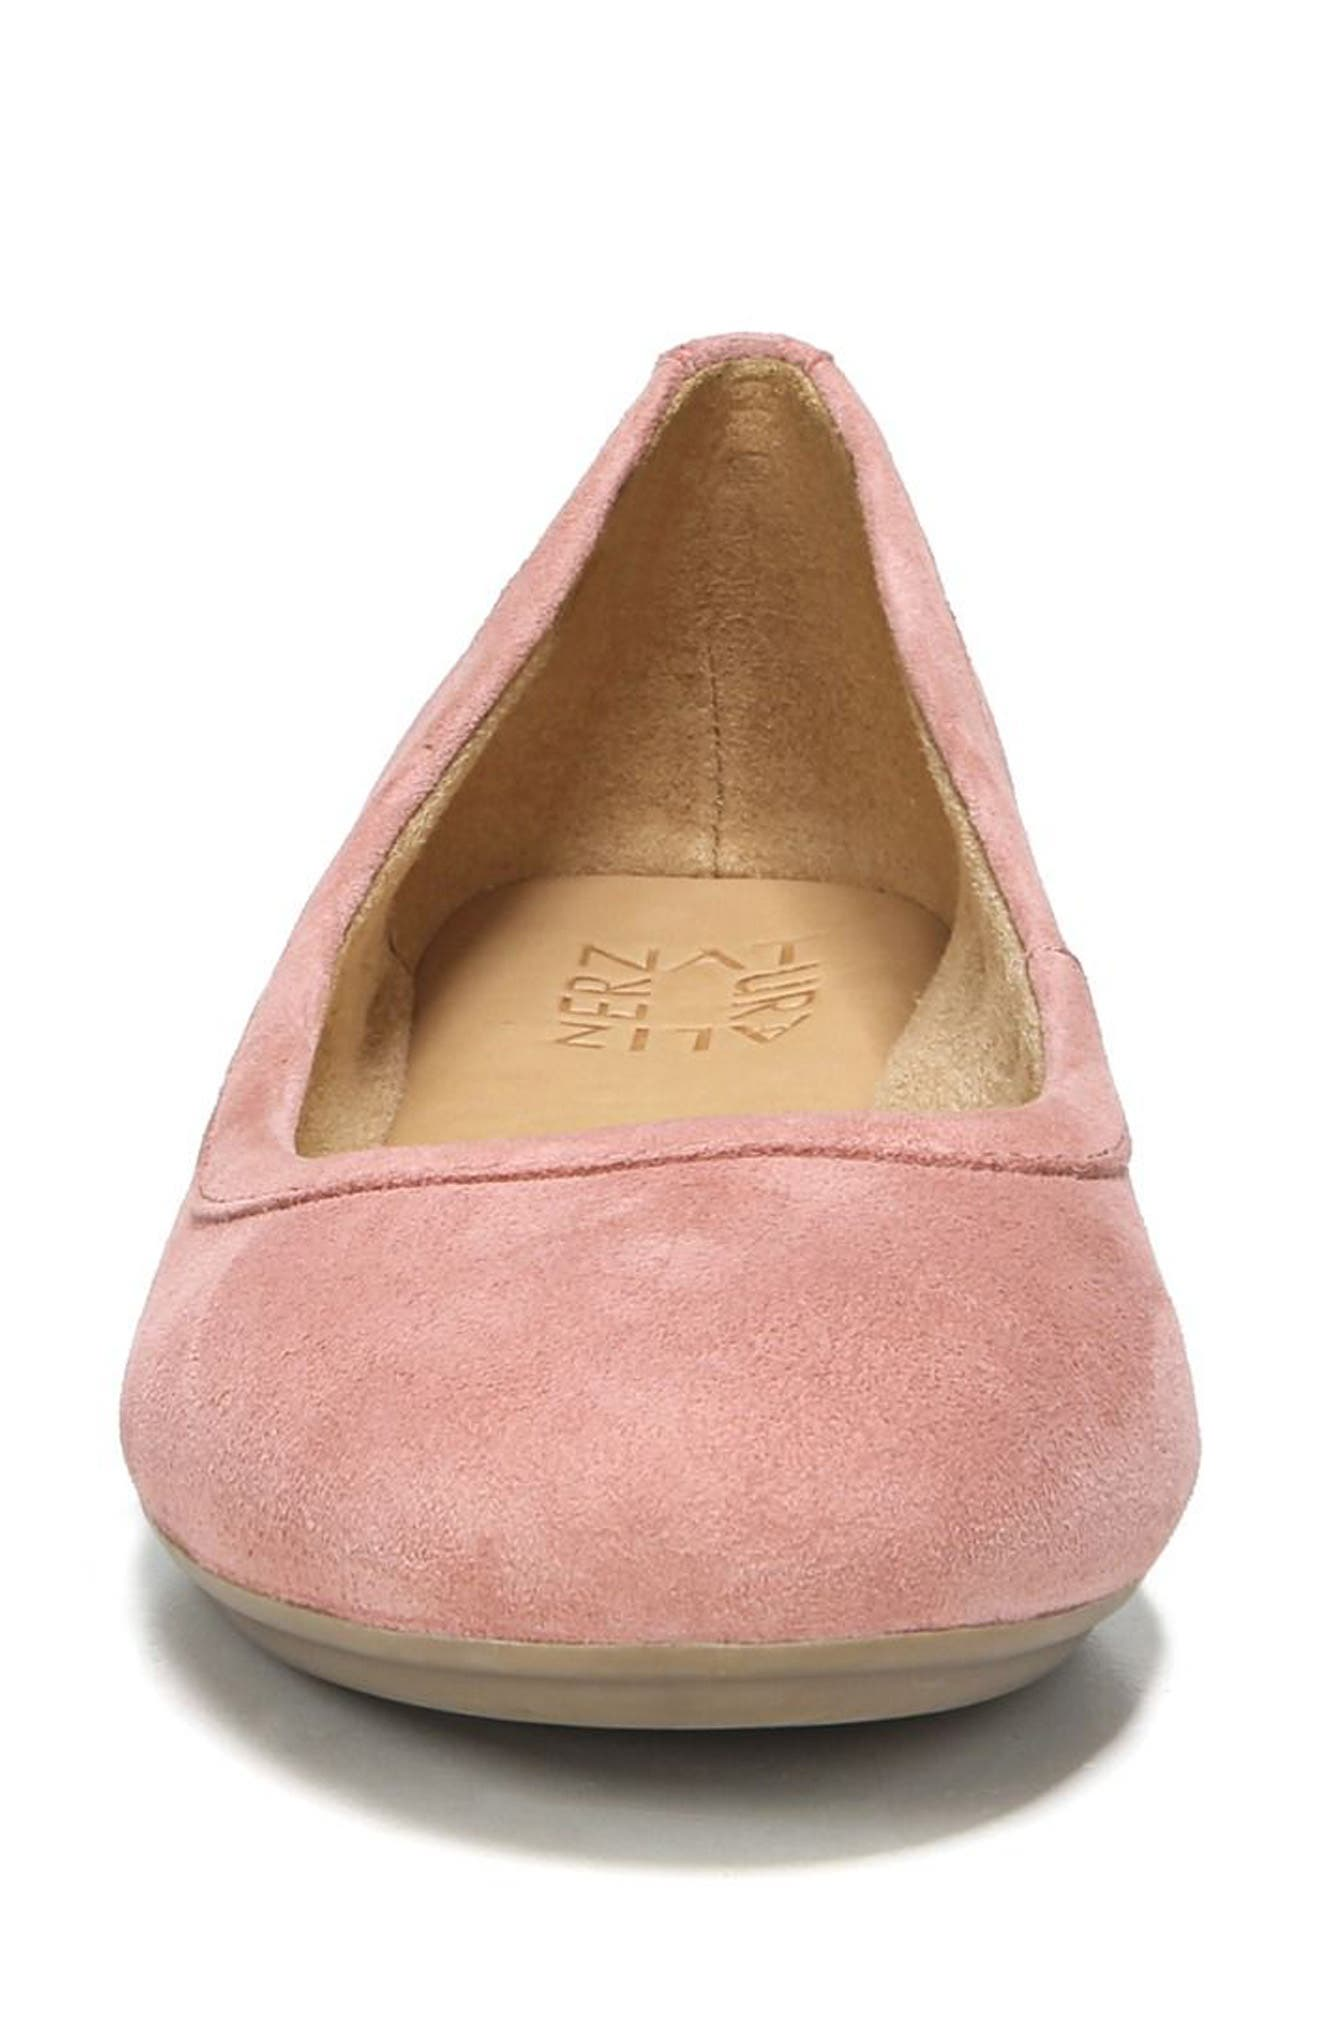 Brittany Ballet Flat,                             Alternate thumbnail 4, color,                             Peony Pink Suede